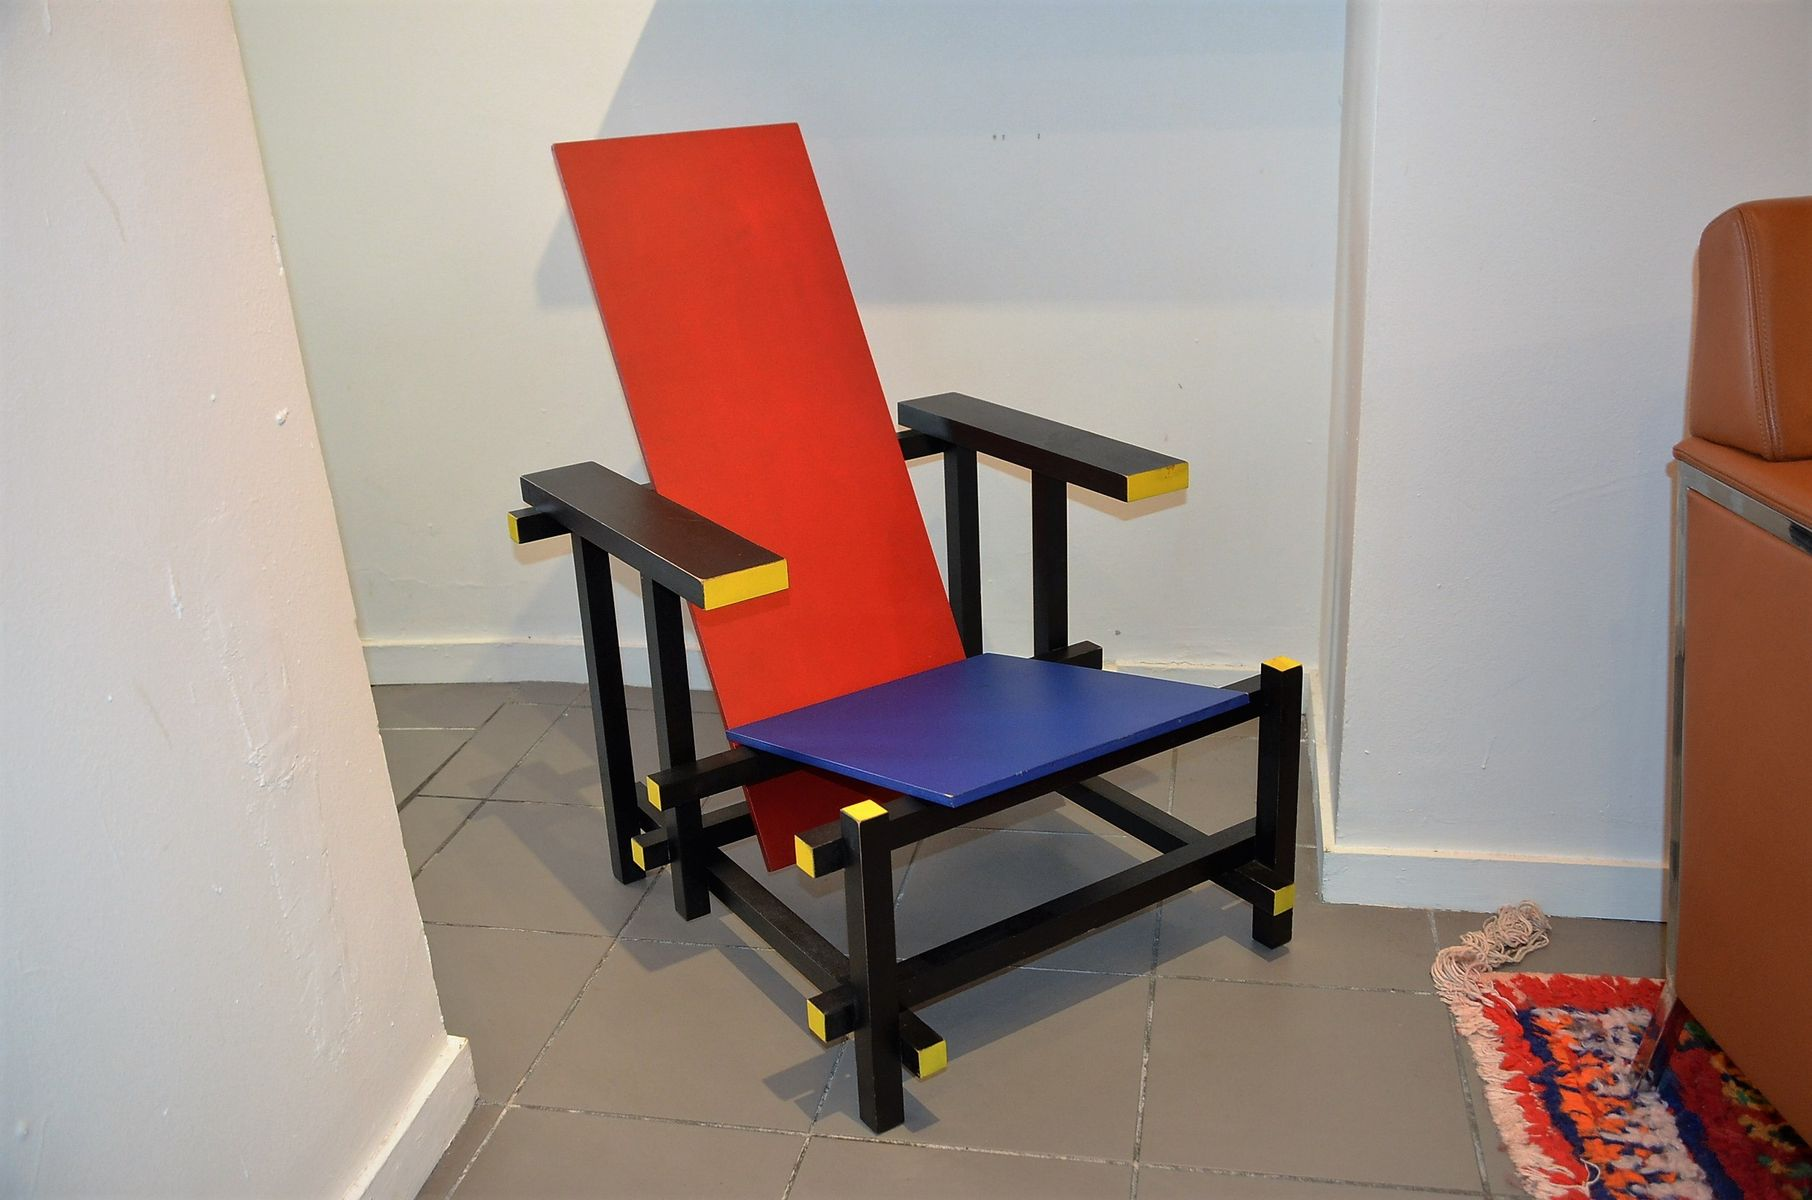 Gerrit rietveld chair for sale - Red And Blue Chair By Gerrit Rietveld For Cassina